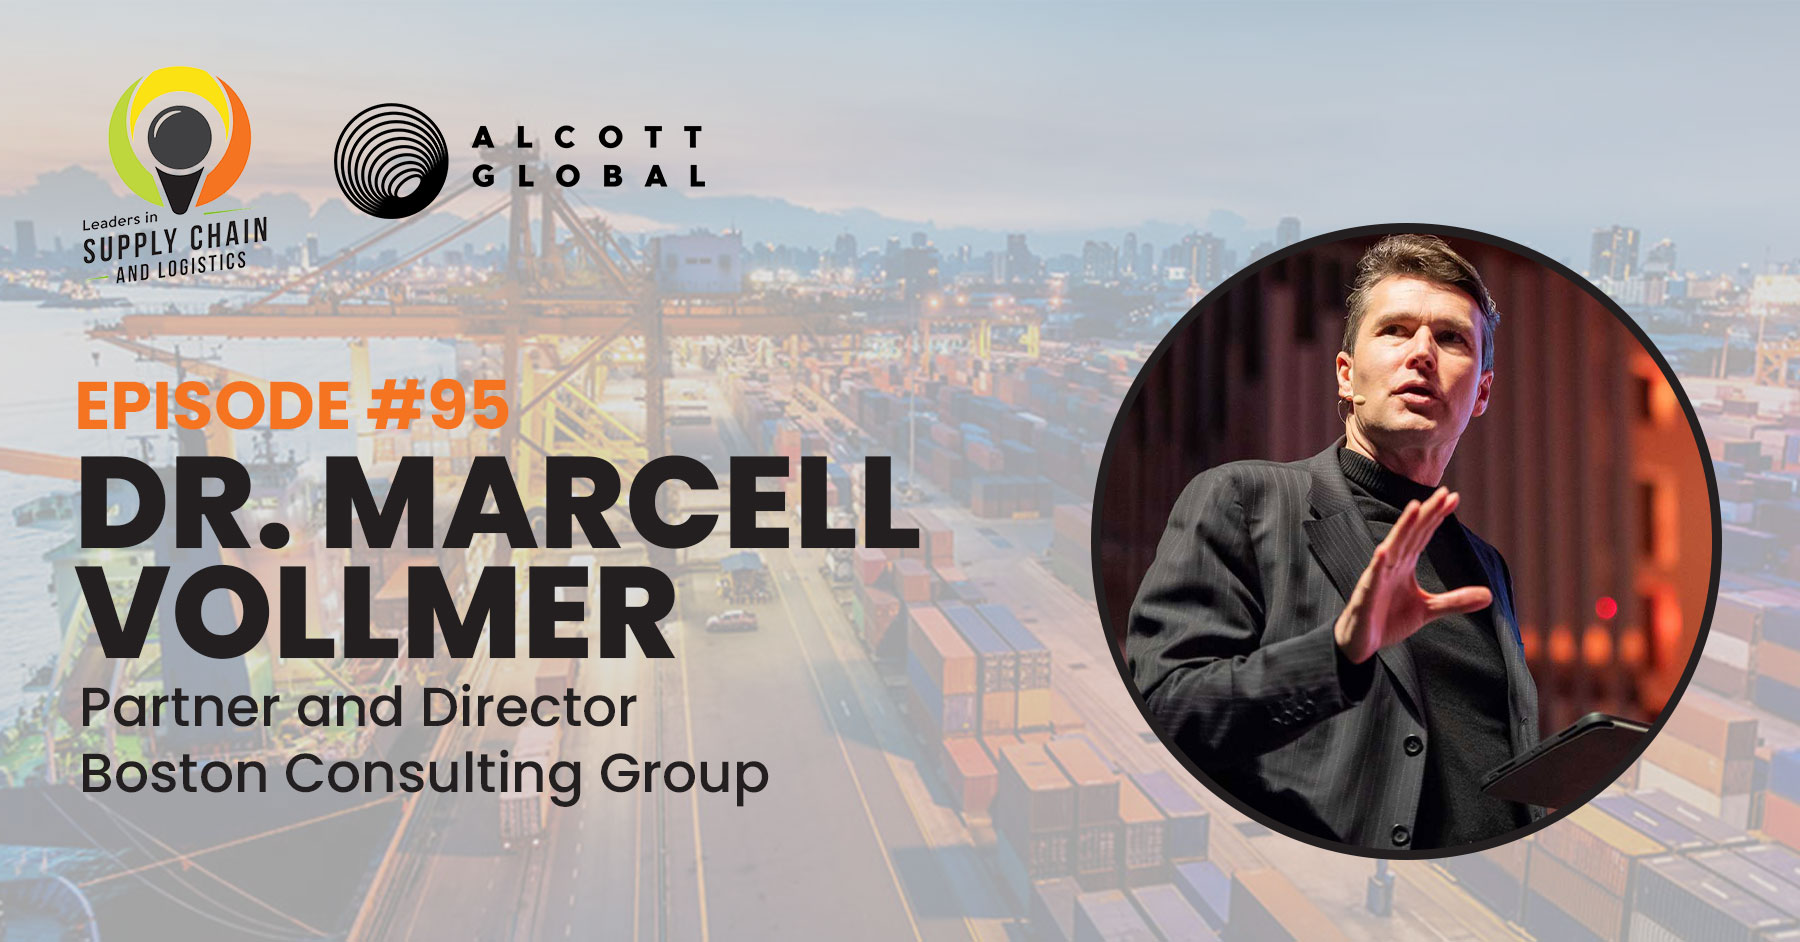 #95: Dr. Marcell Vollmer Partner and Director at Boston Consulting Group Featured Image